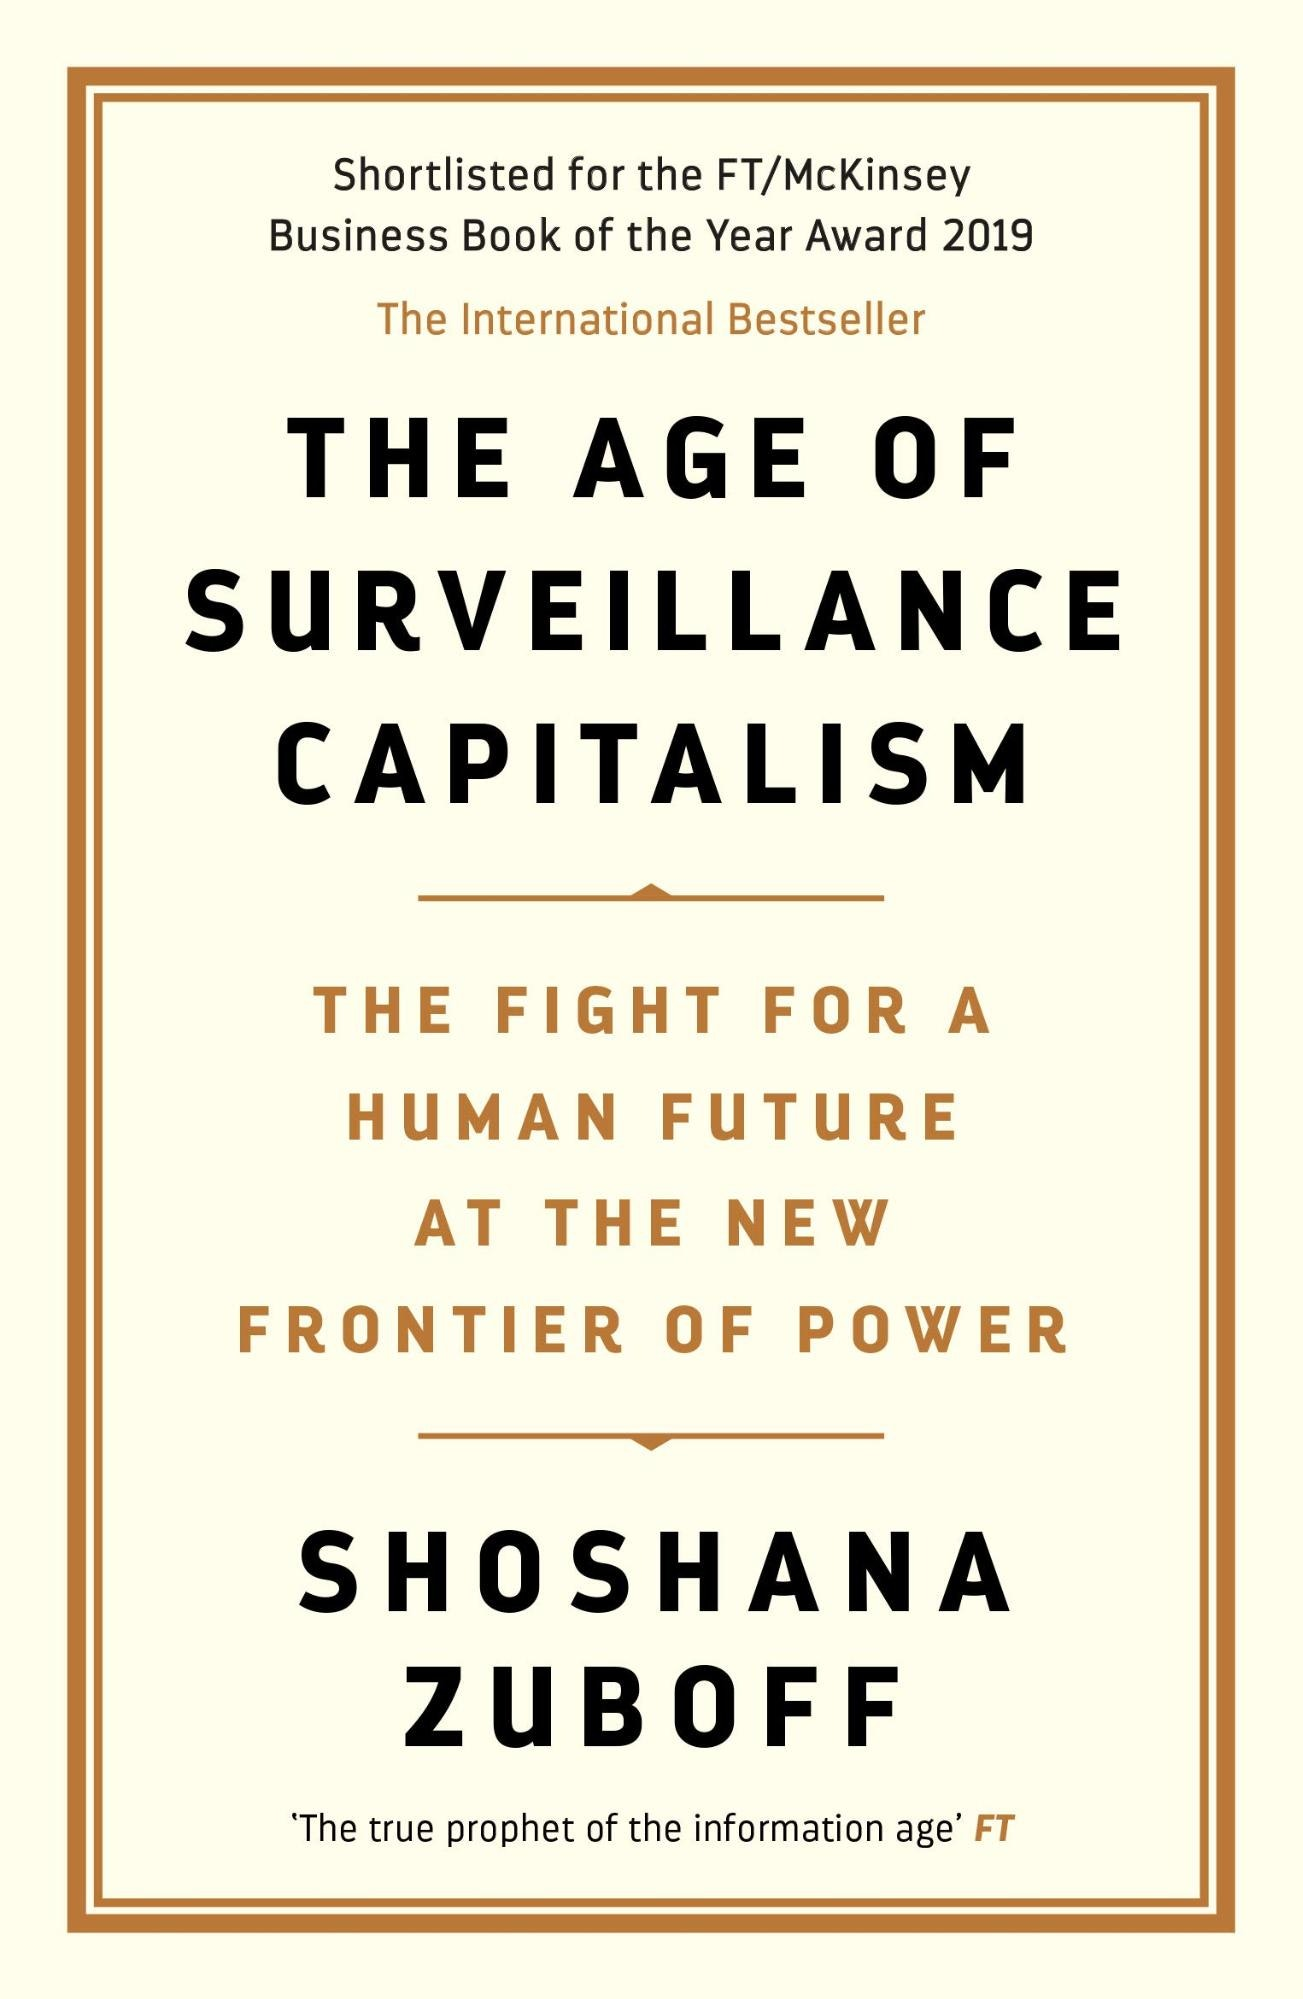 The age of Surveillance Capitalism – Shoshana Zuboff